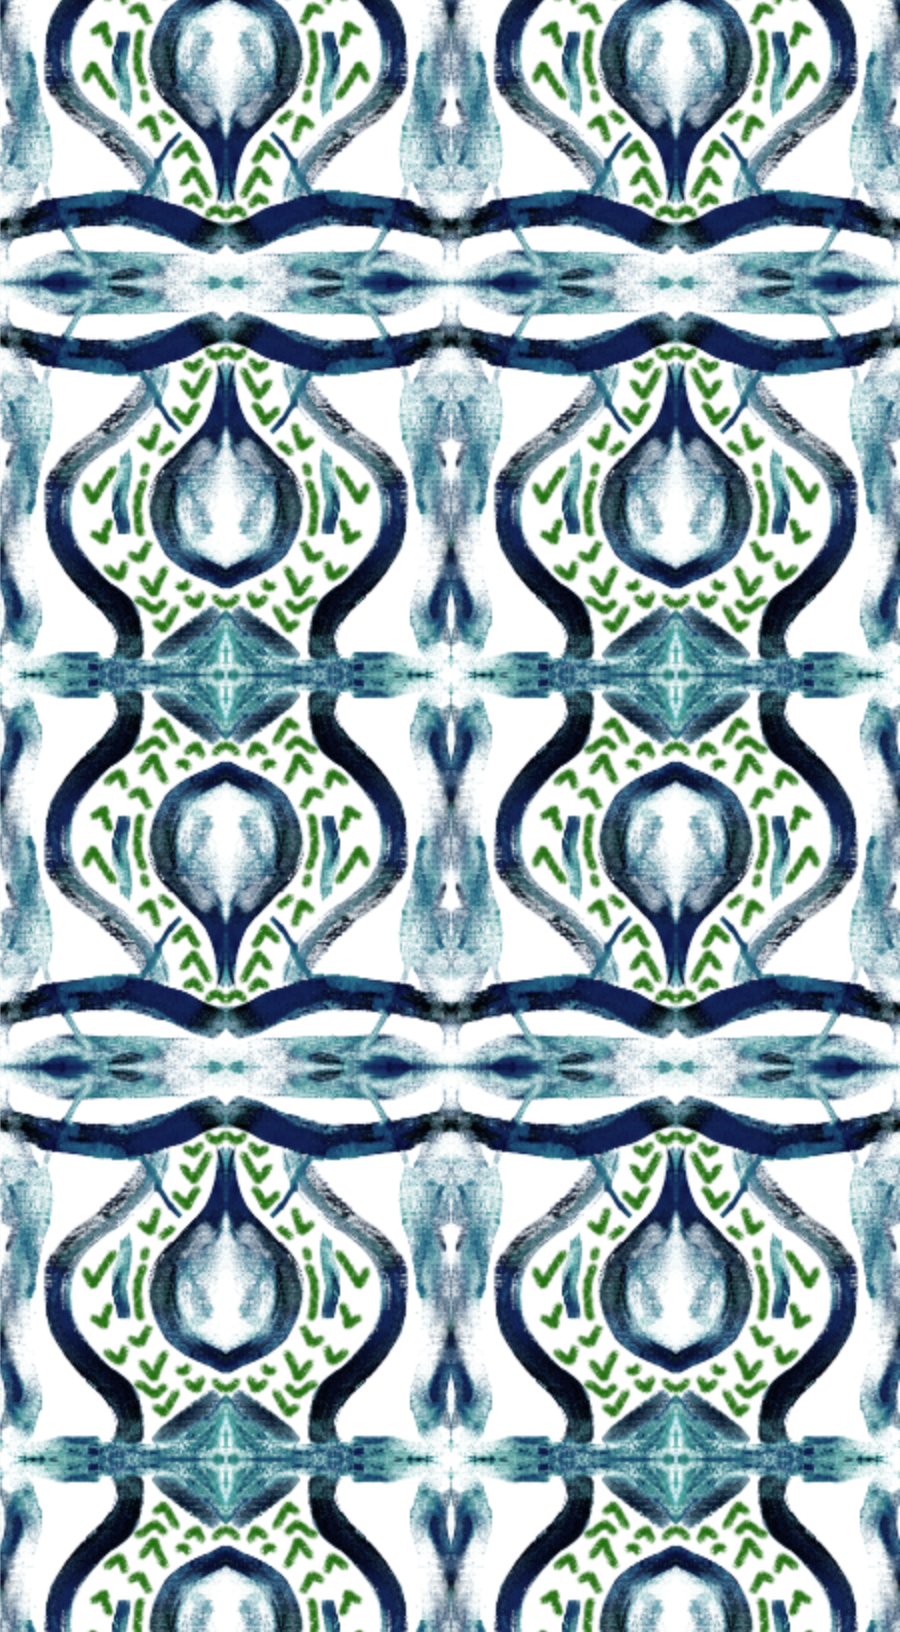 painted ikat wallpaper, blue green painted wallpaper, navy and green paint stroke wallpaper, painterly wallpaper blue green